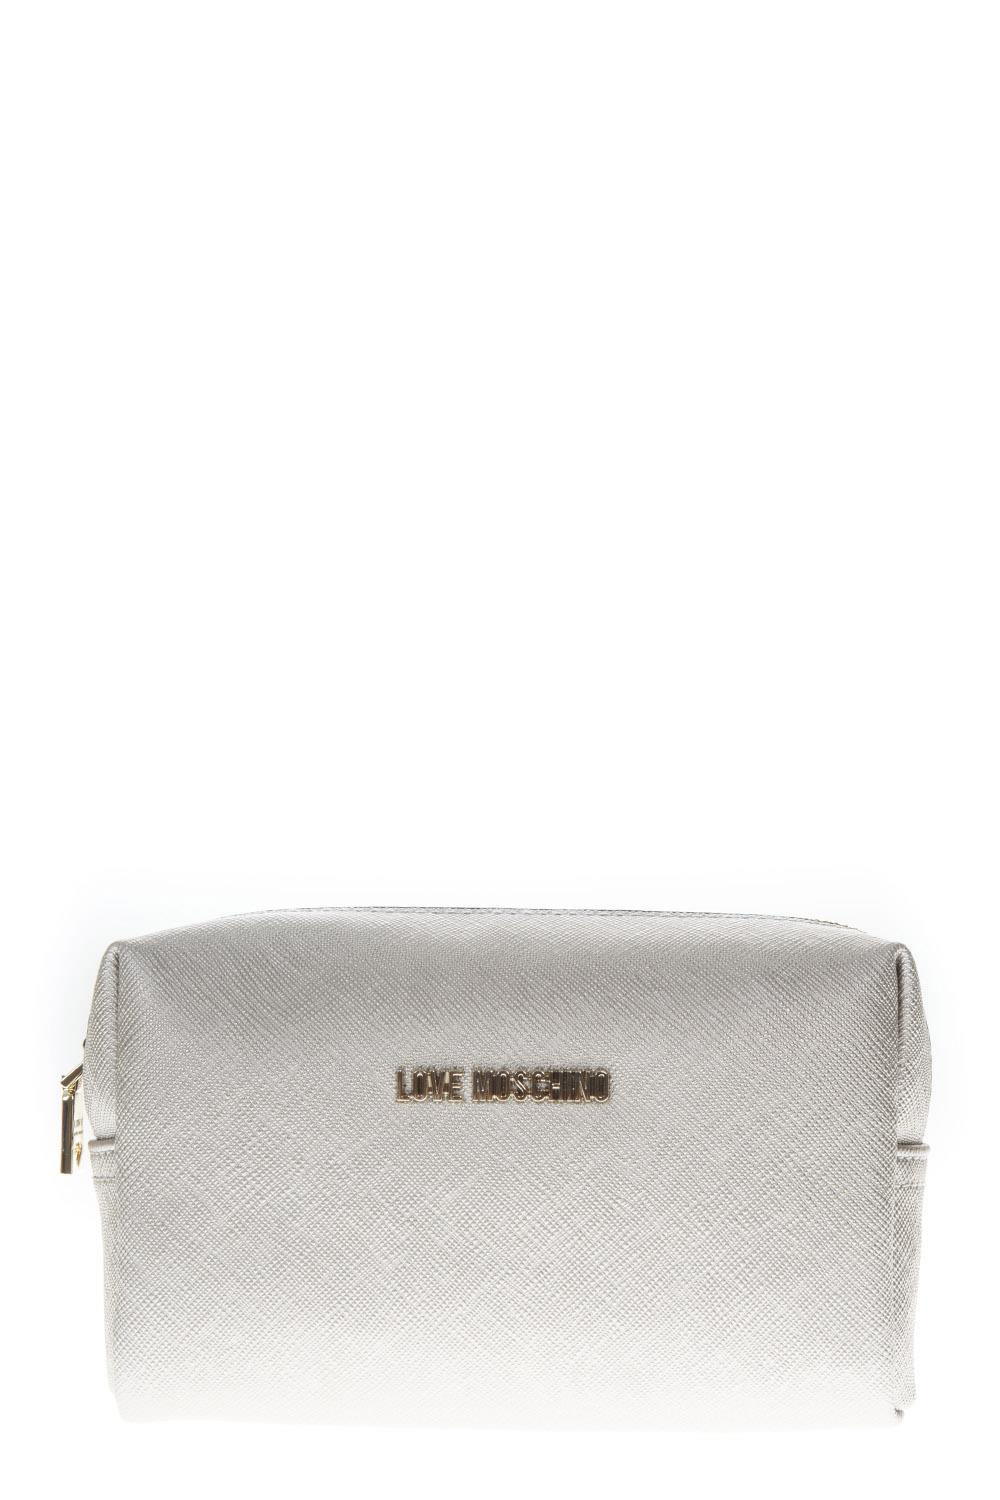 327a18553c4816 WHITE FAUX LEATHER ZIPPED PURSE FW 2018 - LOVE MOSCHINO - Boutique Galiano